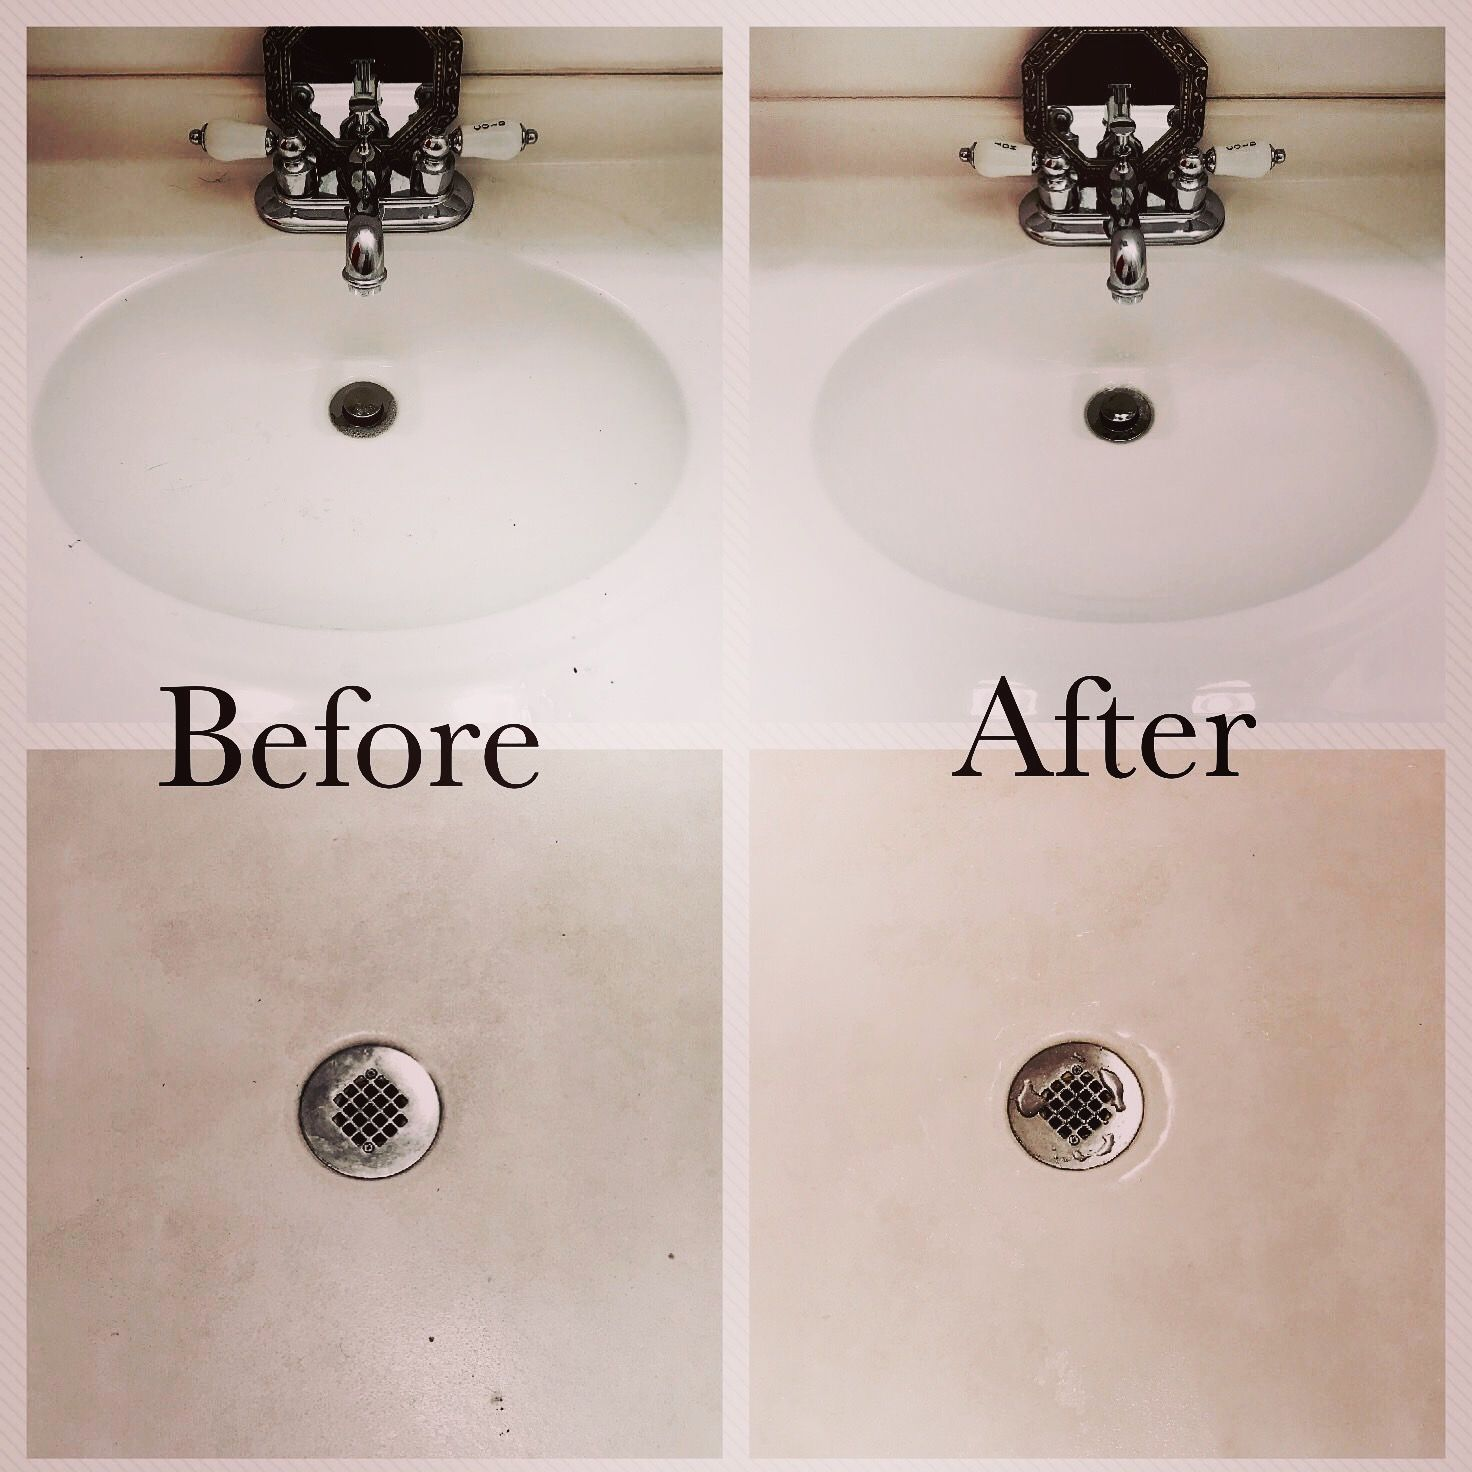 Beau #freesample I Used Kaboom No Drip Mildew U0026 Mold Stain Remover With Bleach  On Multiple Surfaces In My Bathroom. I First Used It On My Sink.